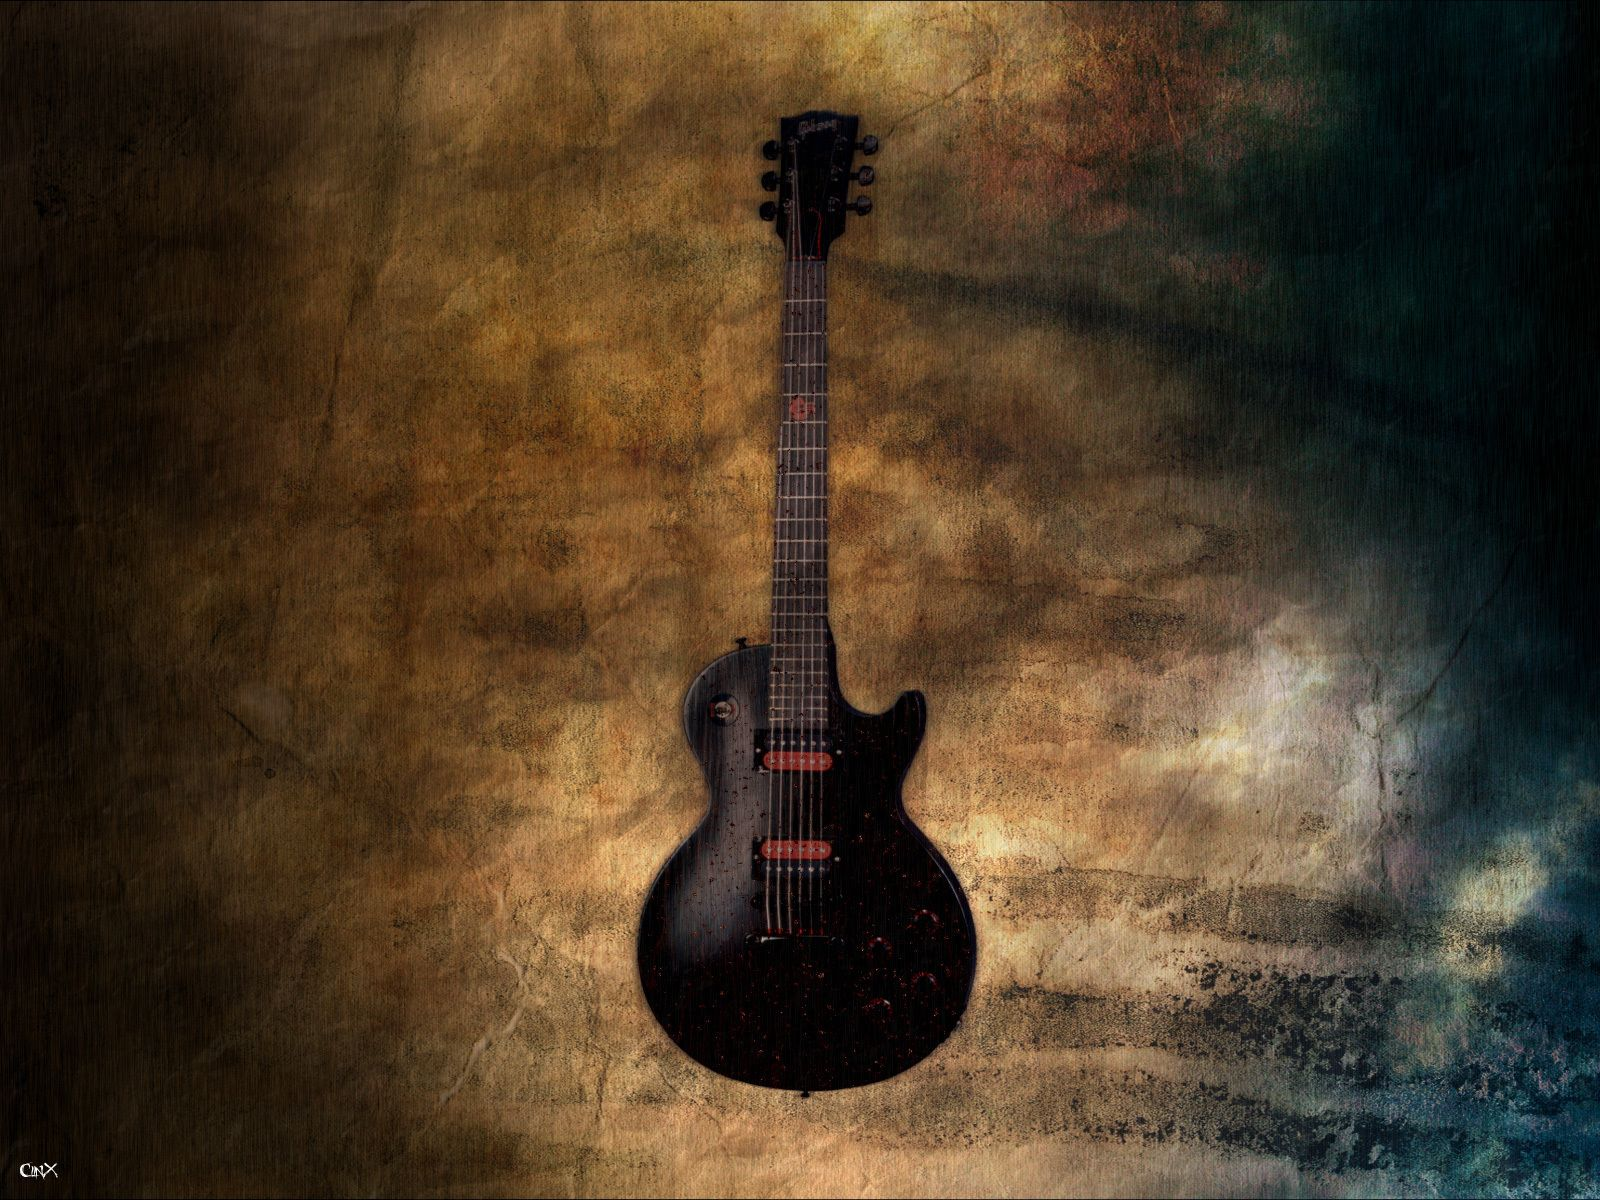 rustic gibson music wallpapers pinterest wallpaper high